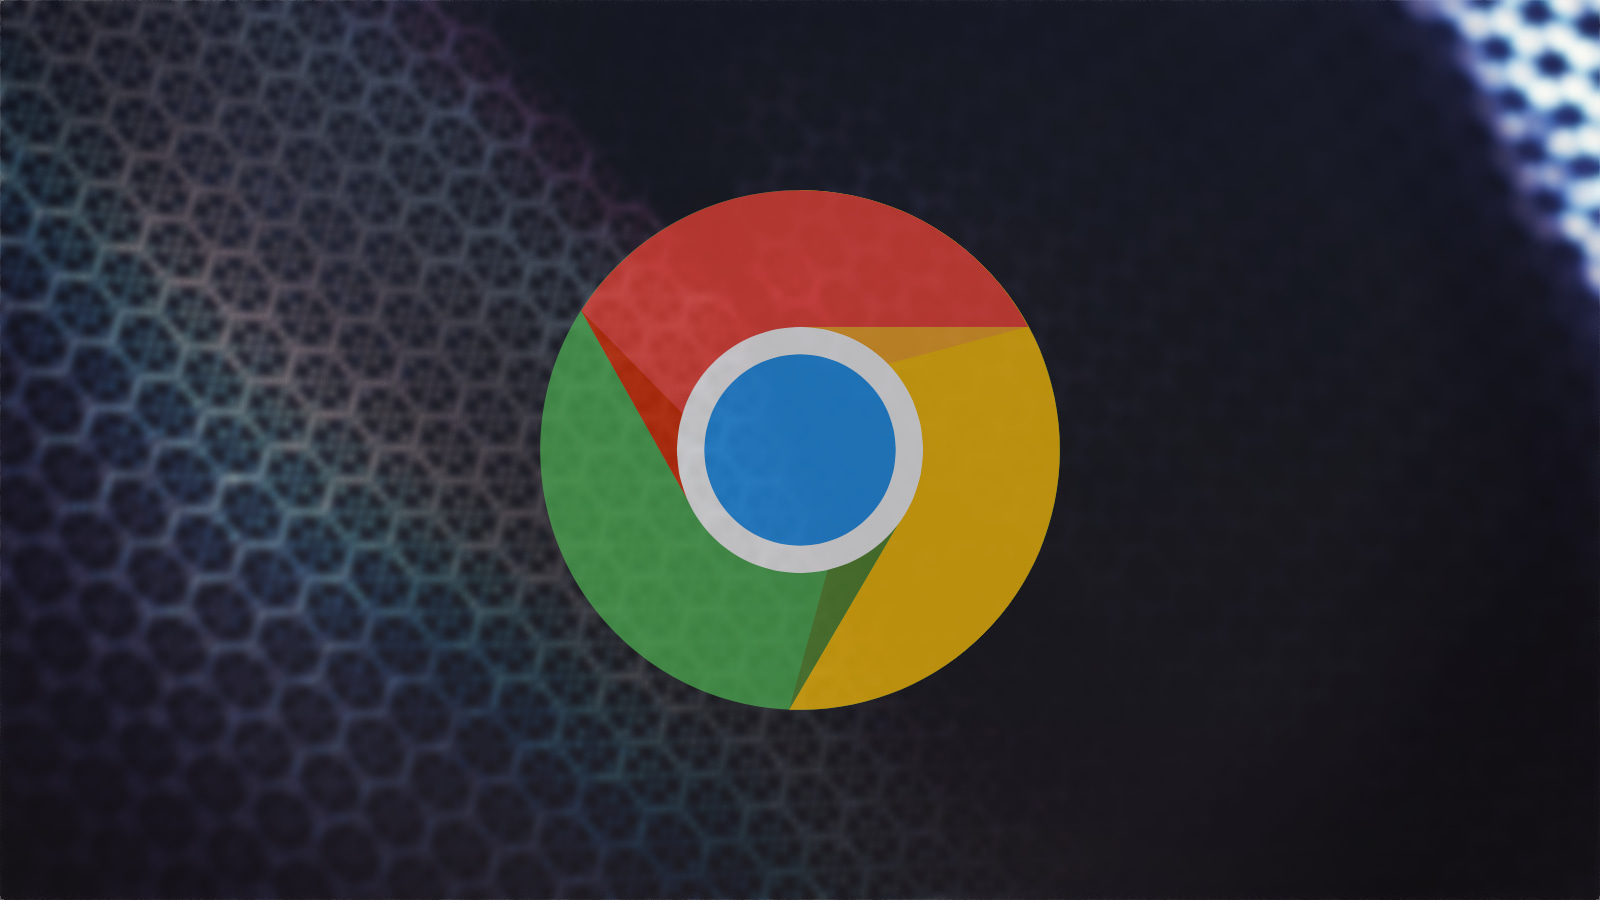 Chrome 90 is here and you should update immediately